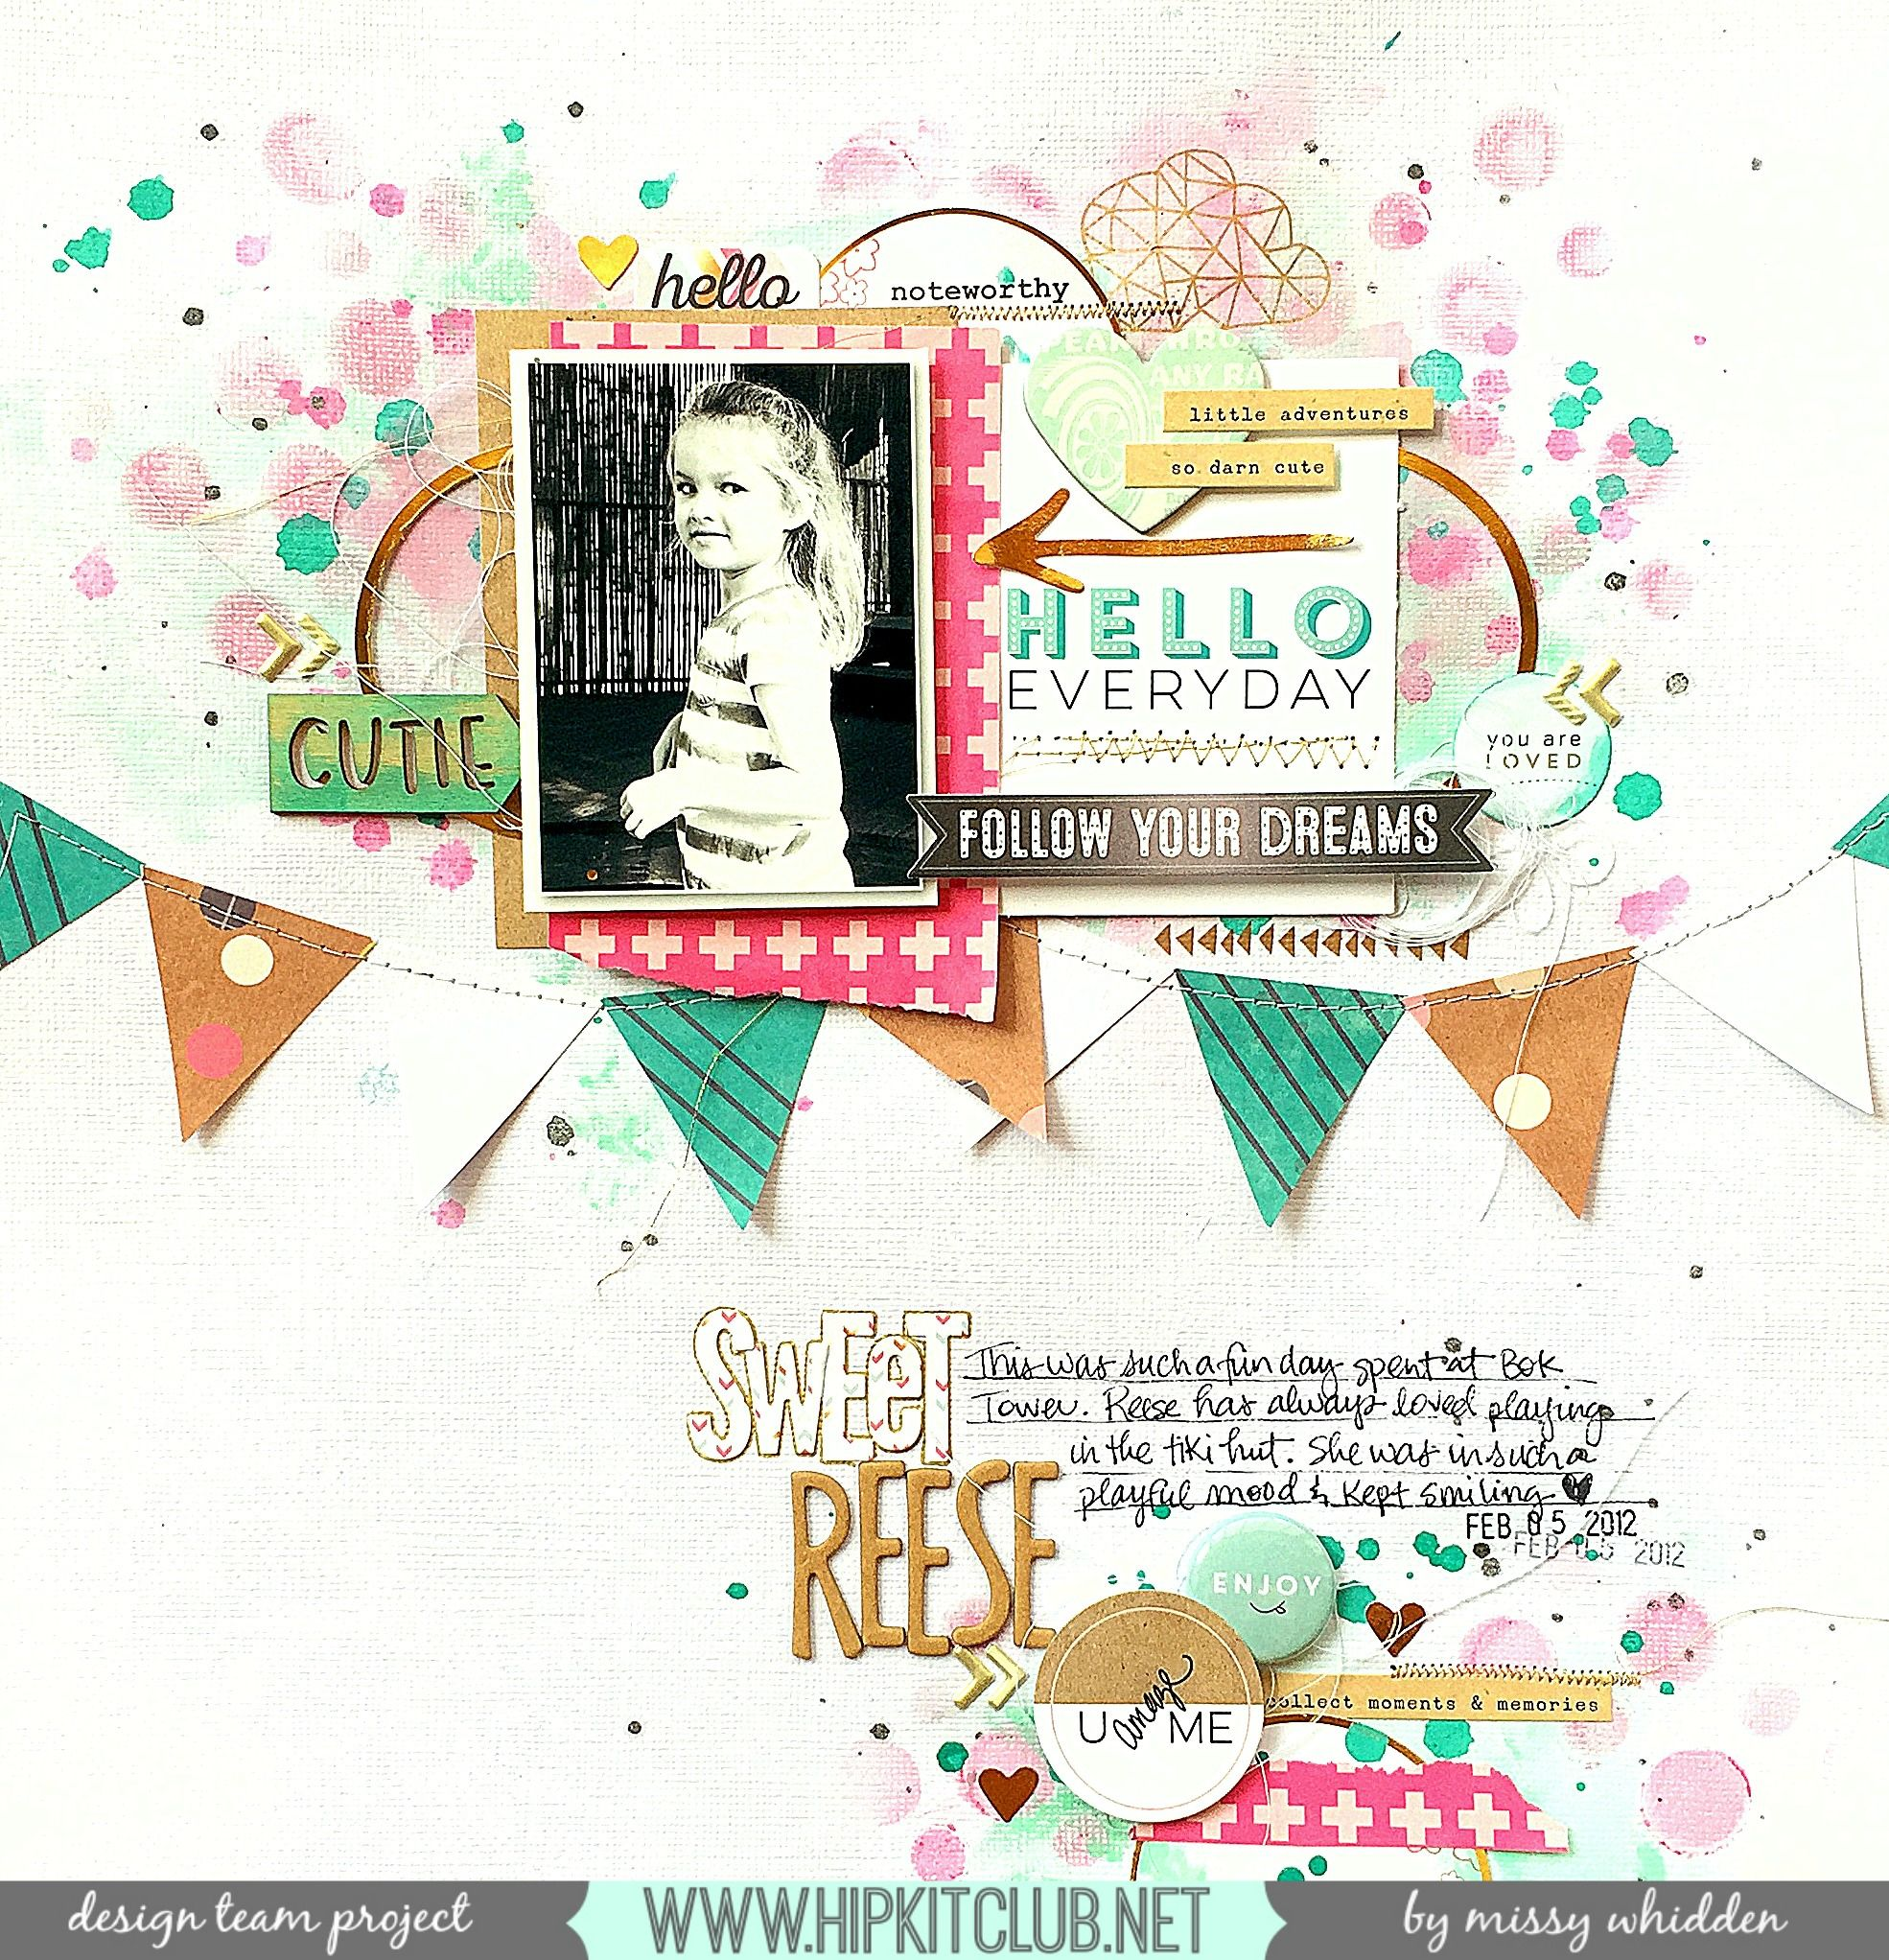 Hip Kit Club DT Project - by Missy Whidden - 2015 March Hip Kits - Crate Paper, American Crafts, Pinkfresh Studio, Elle's Studio, Webster's Pages, Dylusions, Tim Holtz Distress Paint, exclusive die cuts.